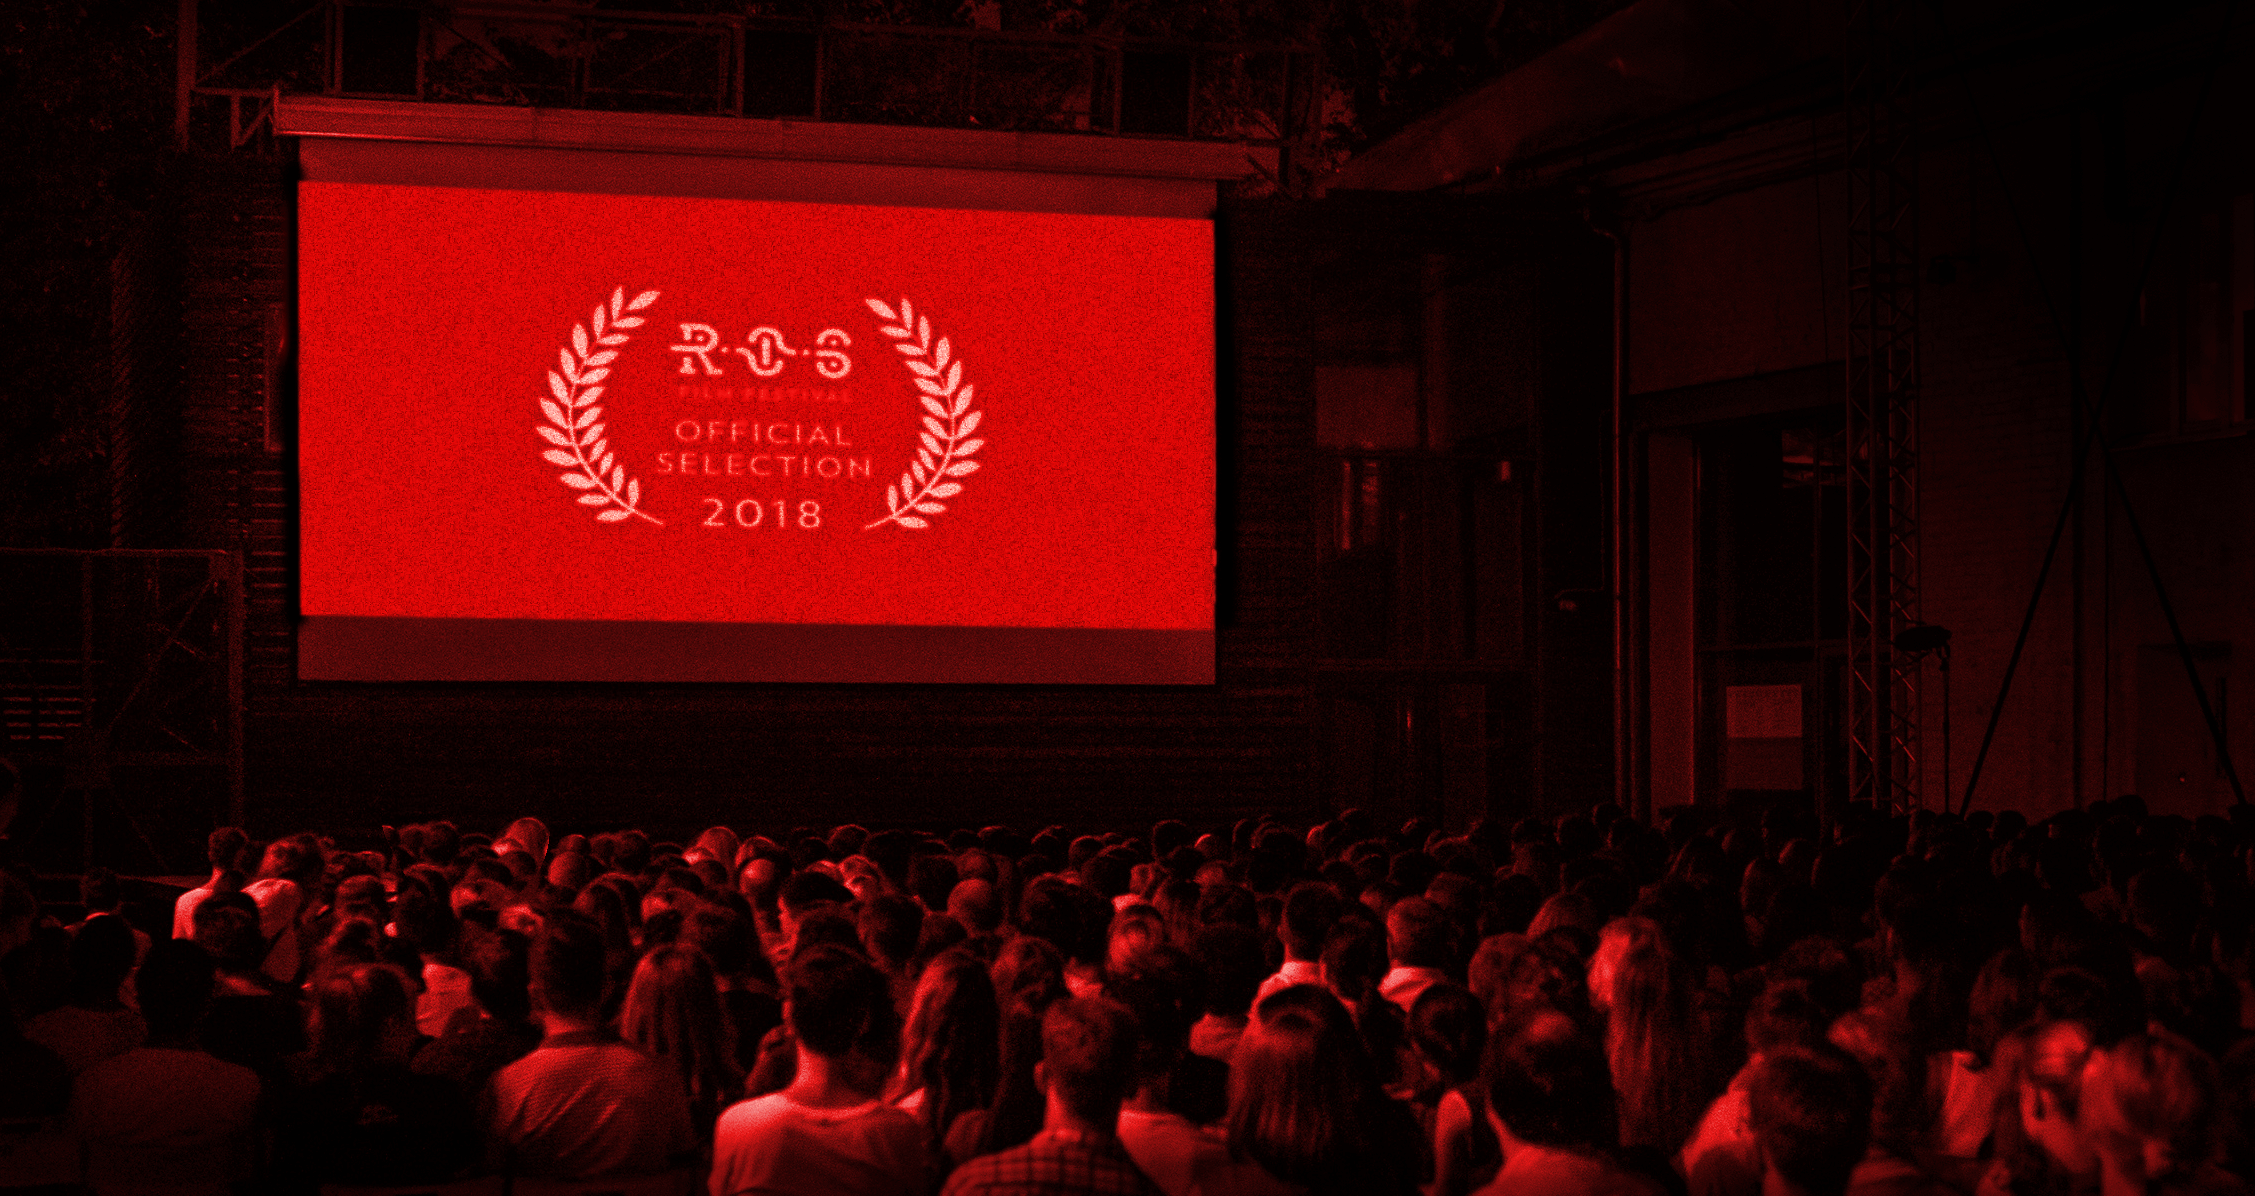 Short films and more short films at ROS Fest 2018